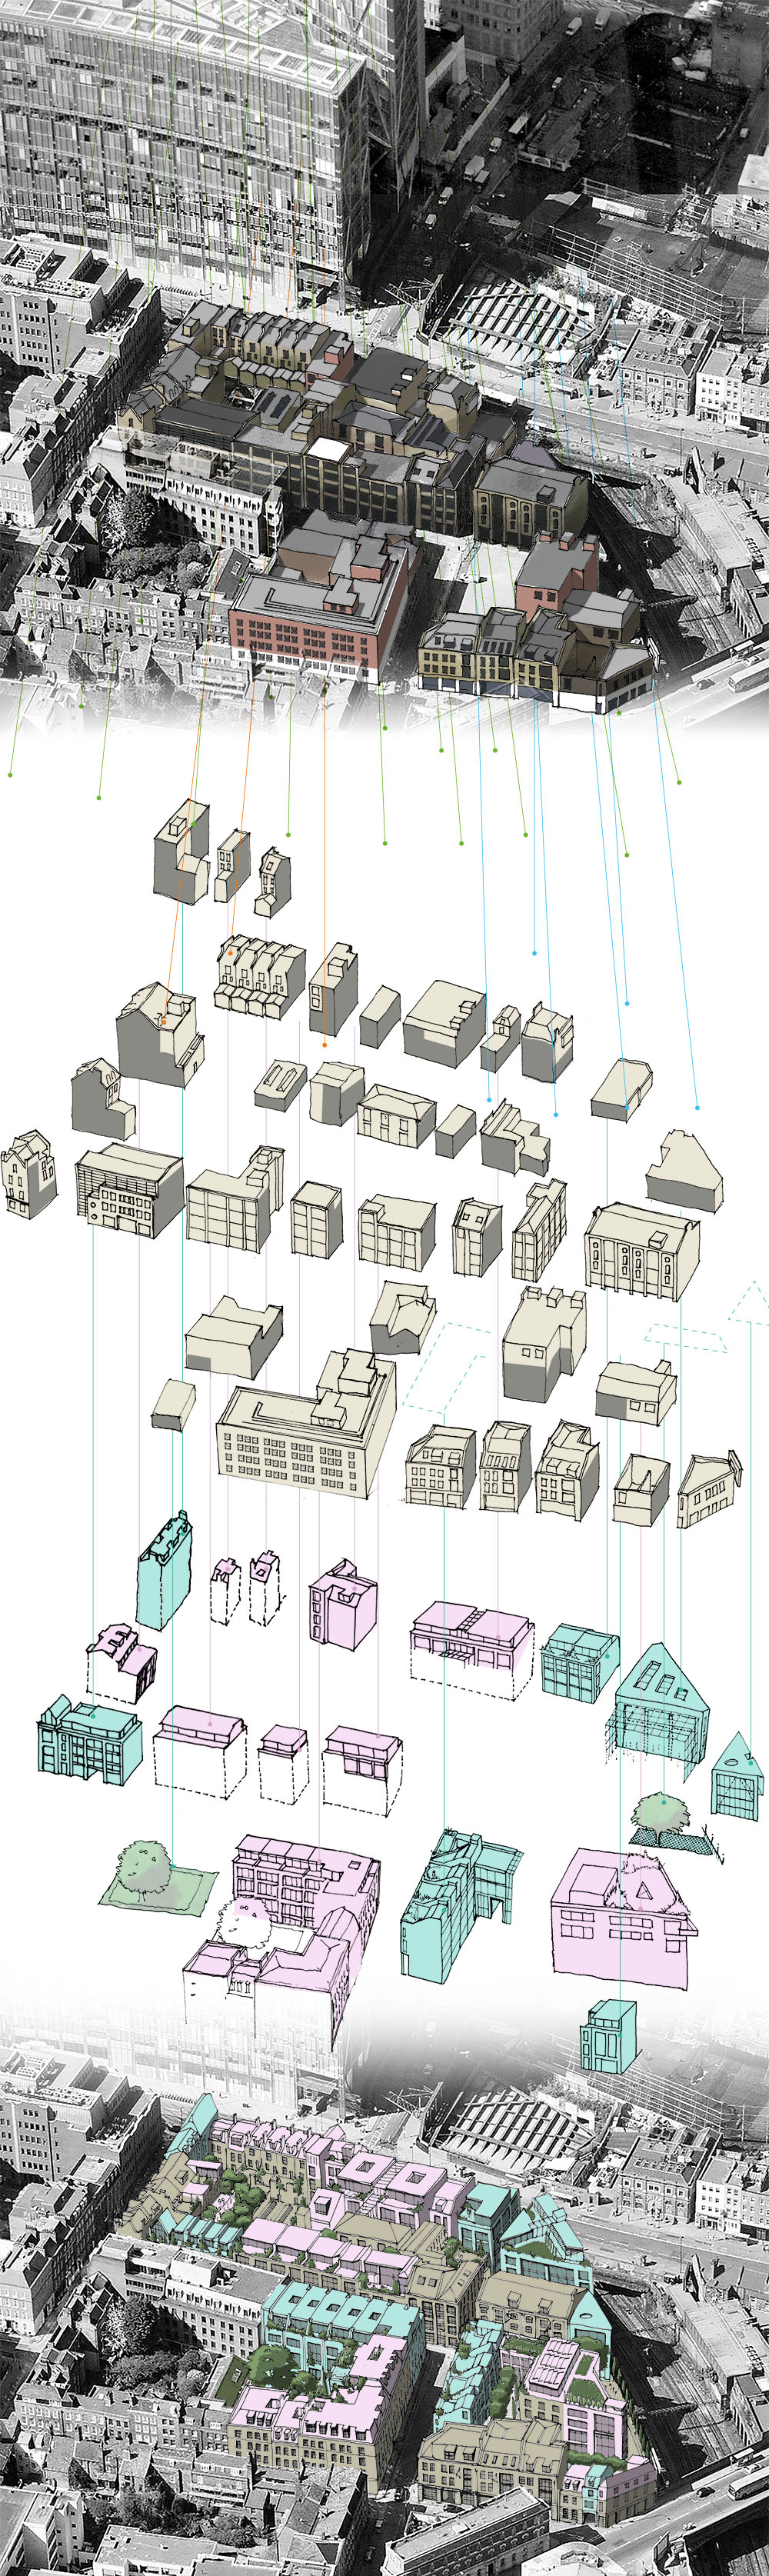 BFF's proposals show the capacity for development on vacant sites and additions to existing buildings (existing buildings shown in beige and new development in green and pink)